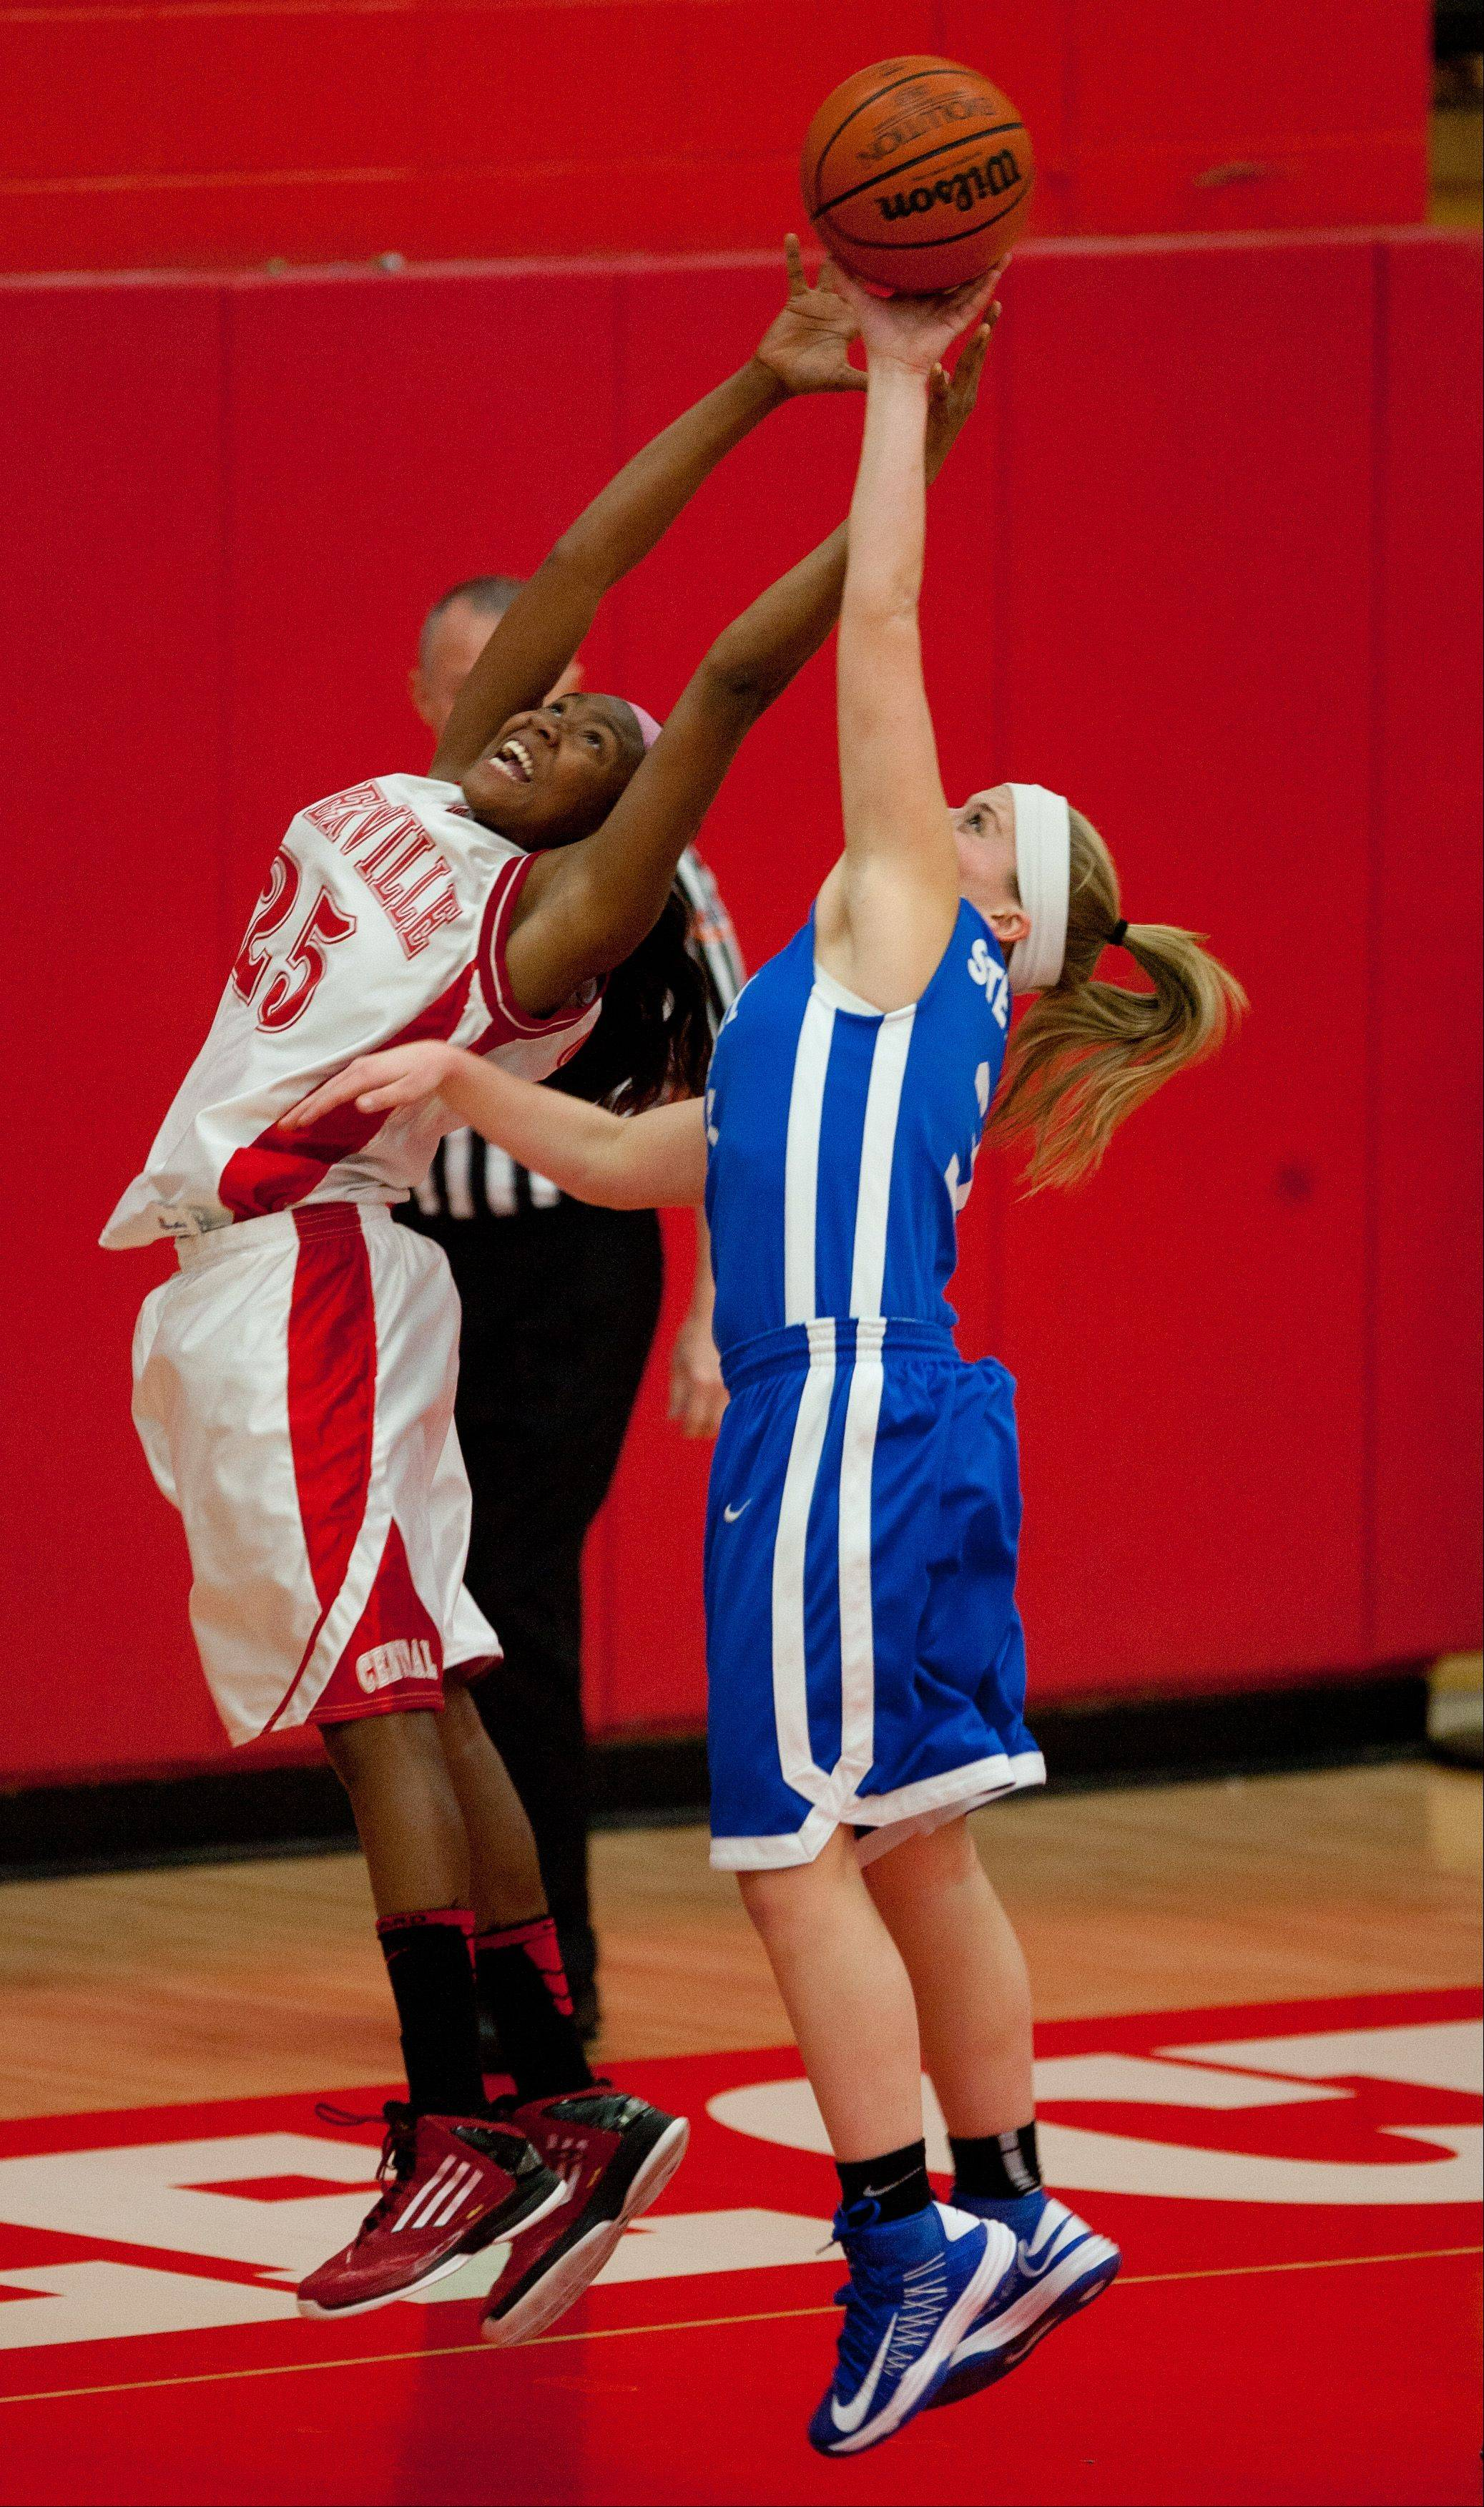 Naperville Central's Cierra Stanciel, left, looks to gather a rebound against Wheaton North on Saturday.